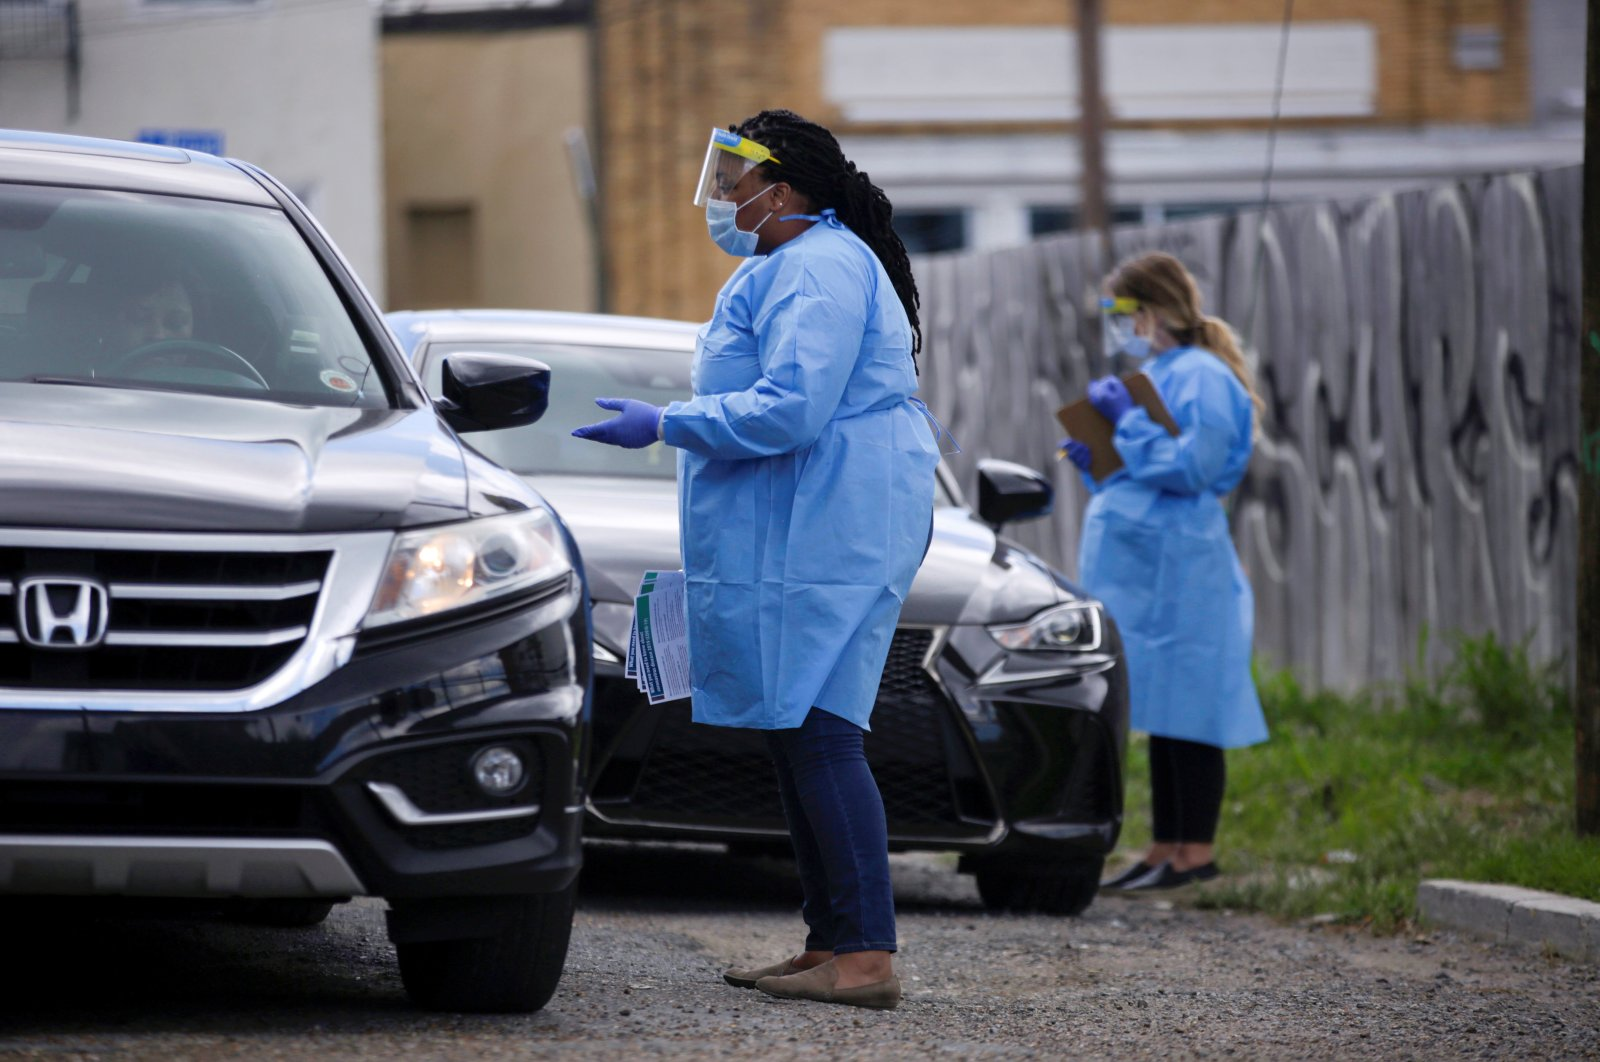 A consultation conducted with a driver to see if she should be tested for the coronavirus, in New Orleans, Louisiana, U.S., Friday, March 27, 2020. (Reuters Photo)